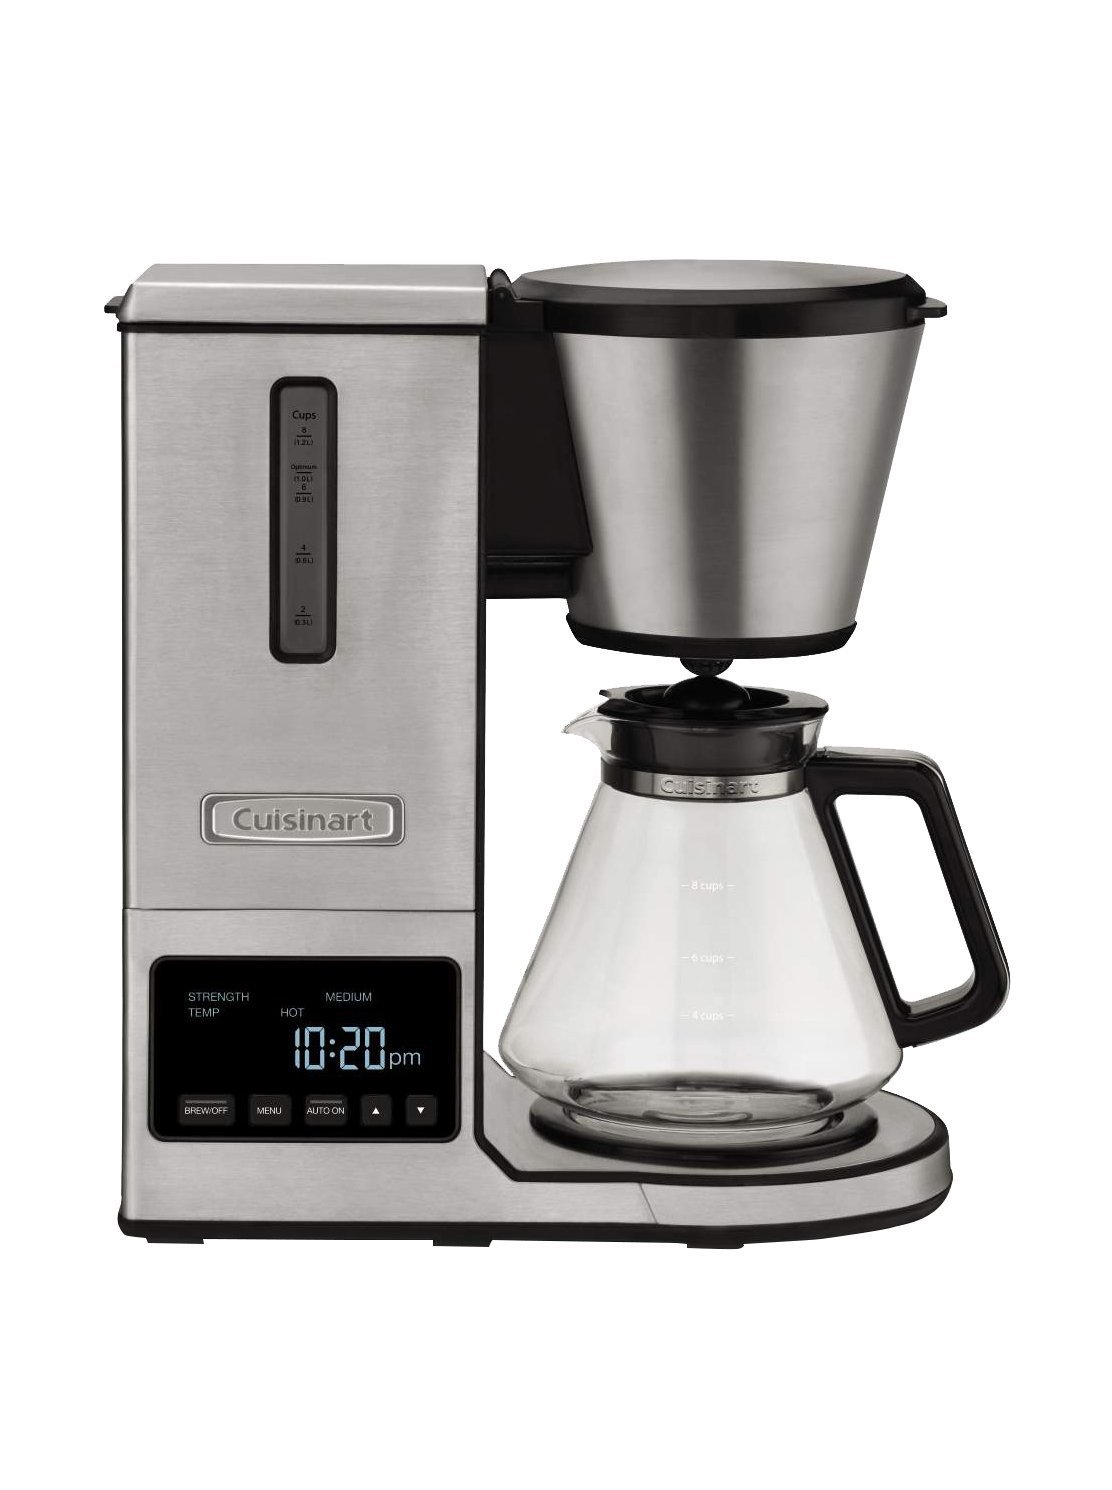 Cuisinart Pure Precision Pour Over Coffee Brewer Review, Price and Features - Pros and Cons of ...